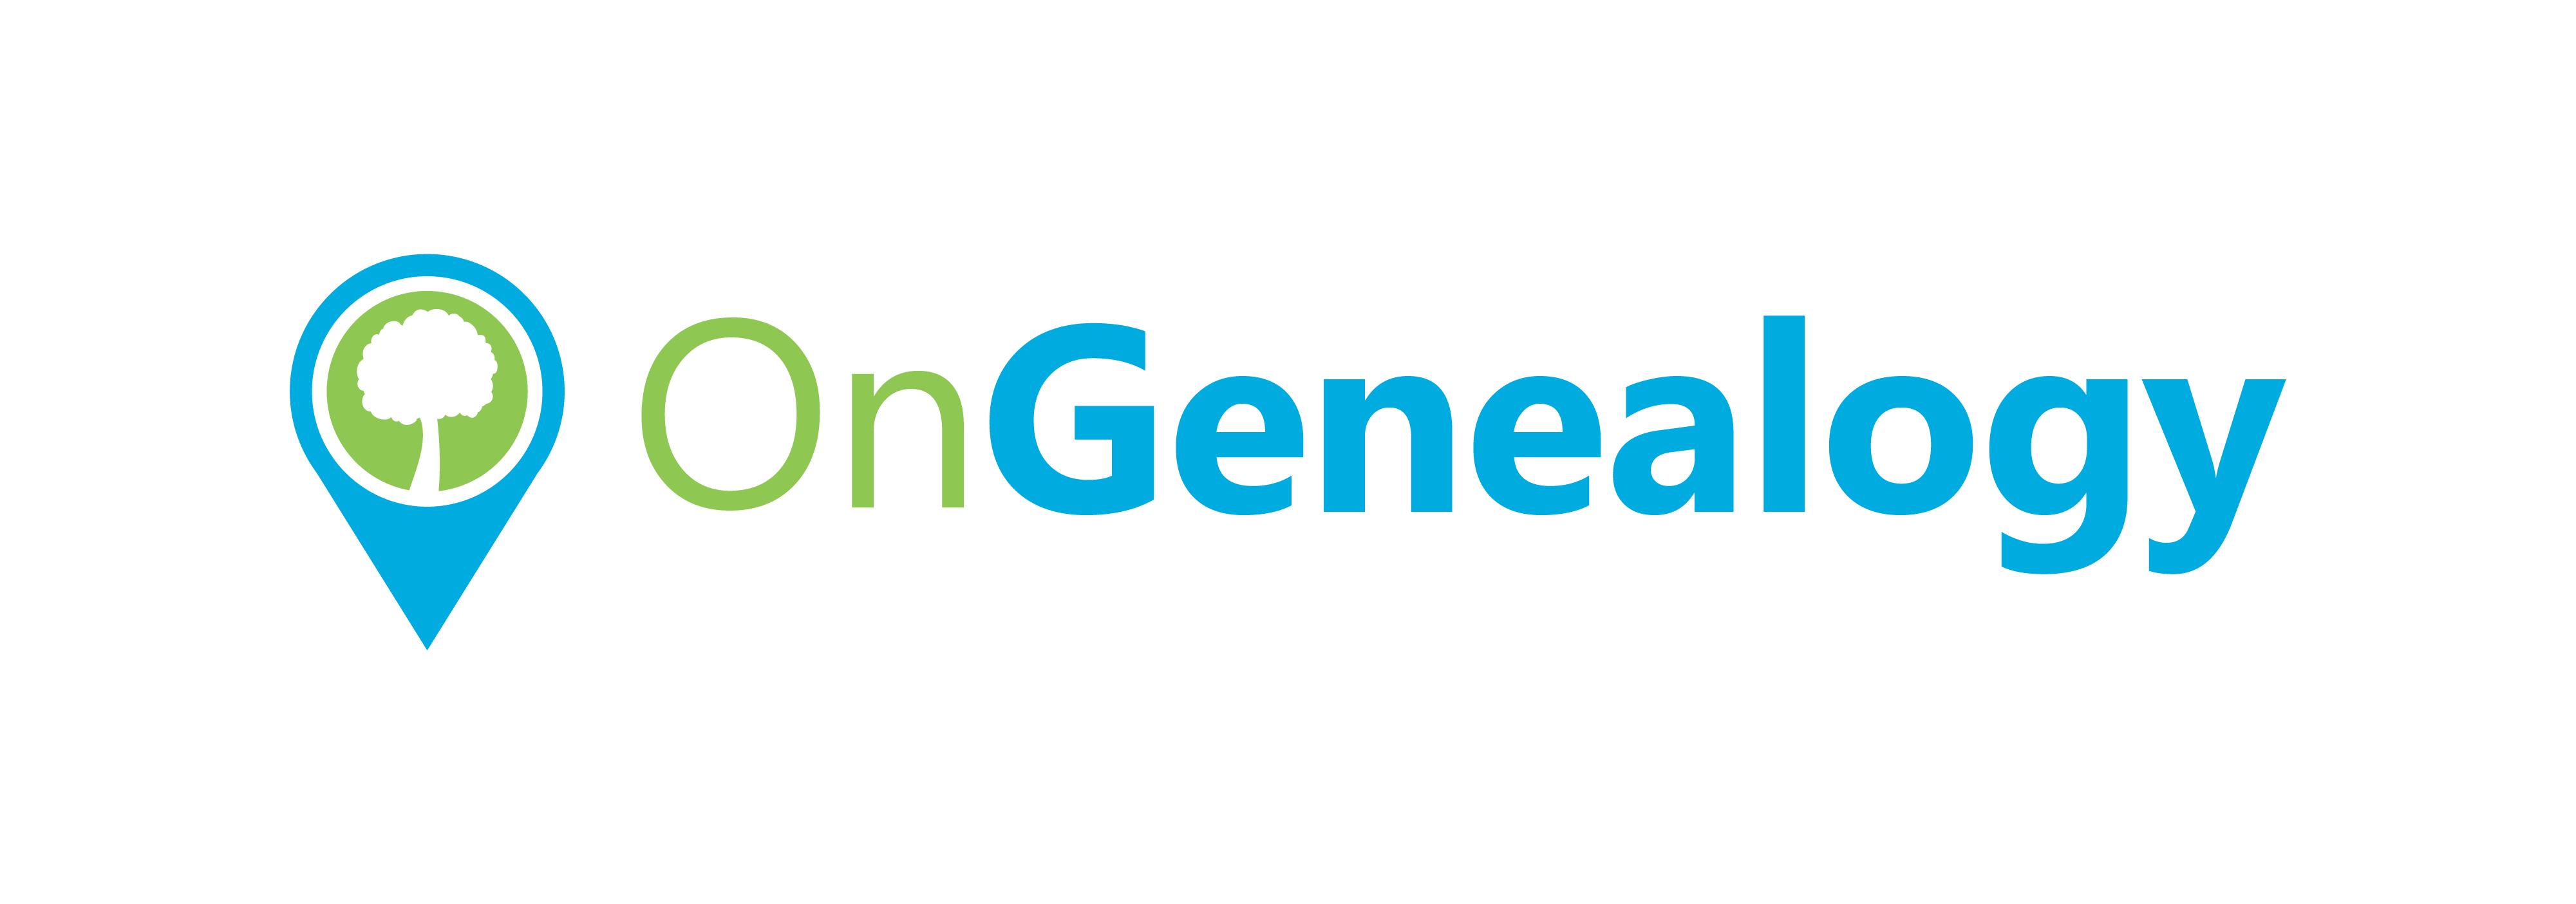 Search for    - OnGenealogy